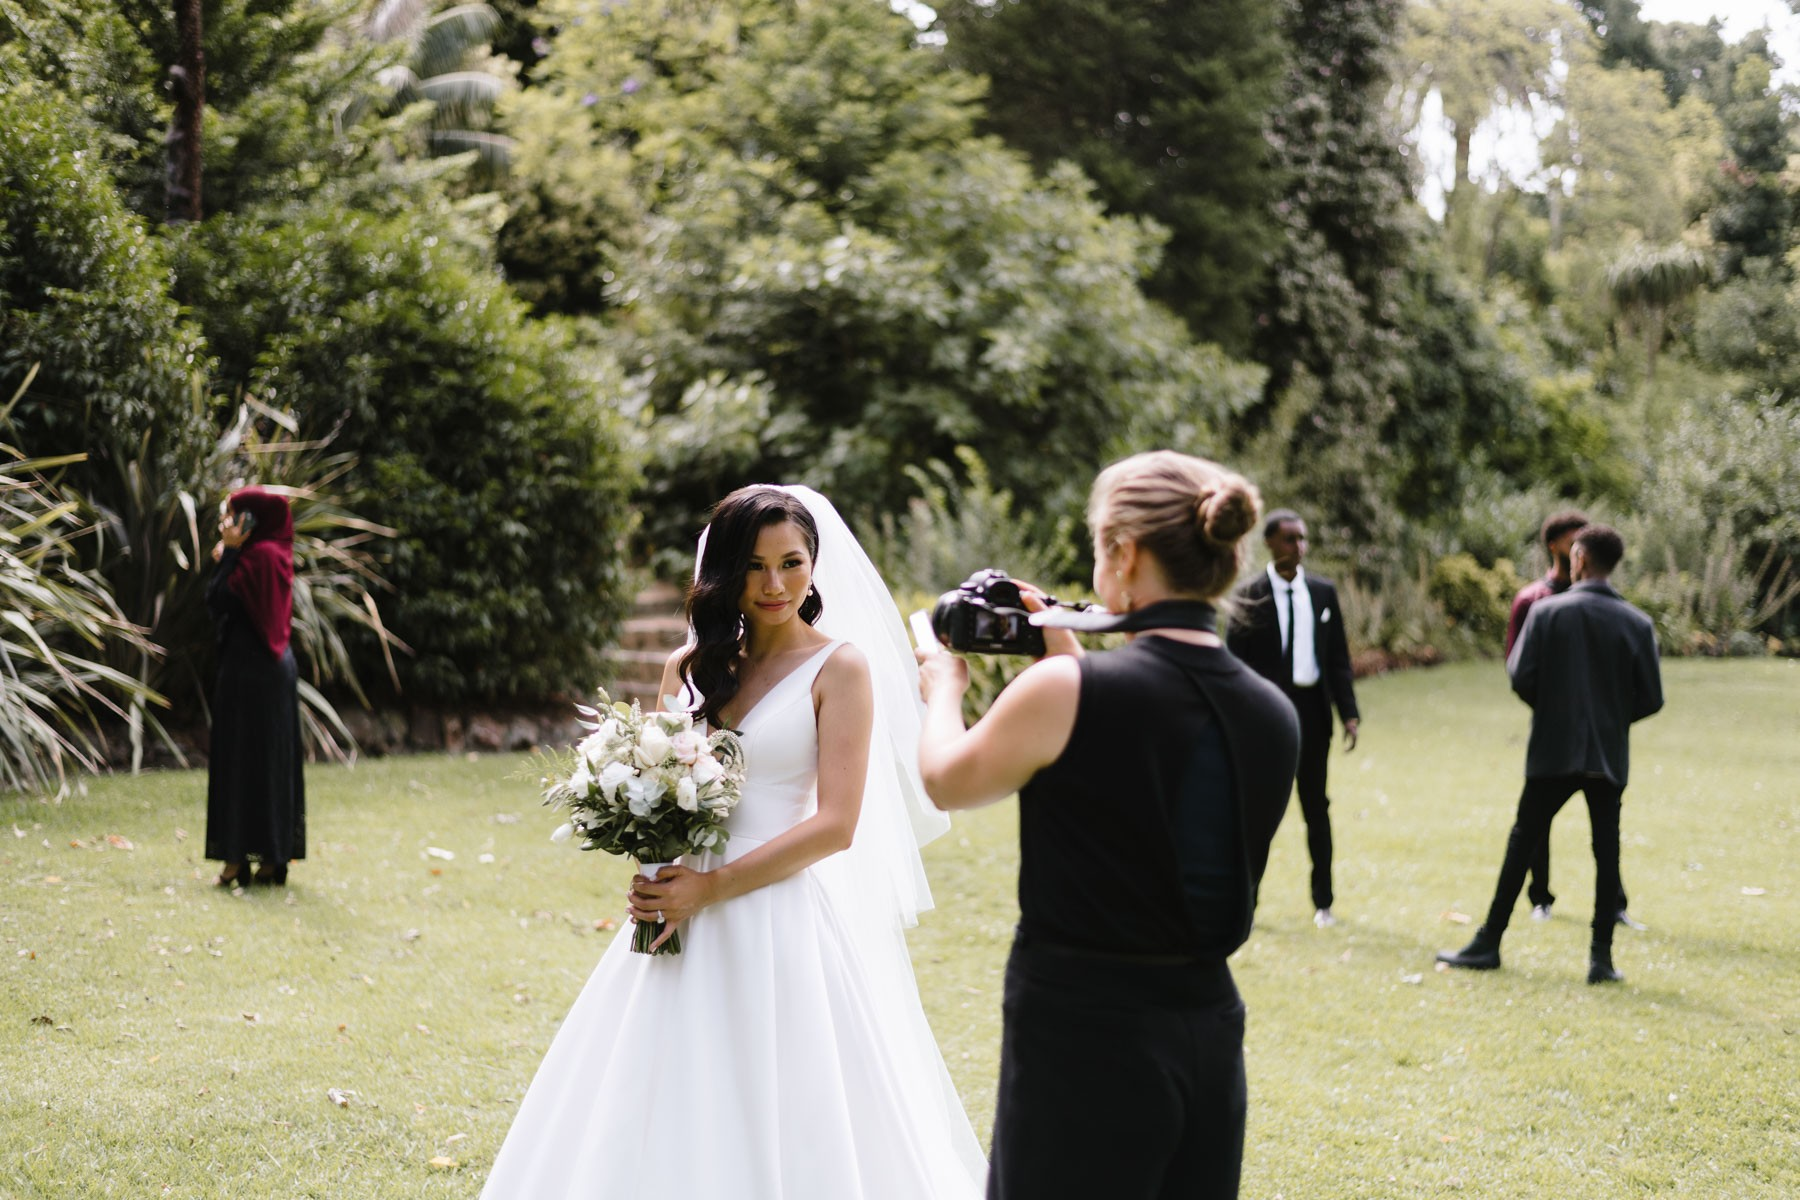 What are the skills a wedding photographer needs?